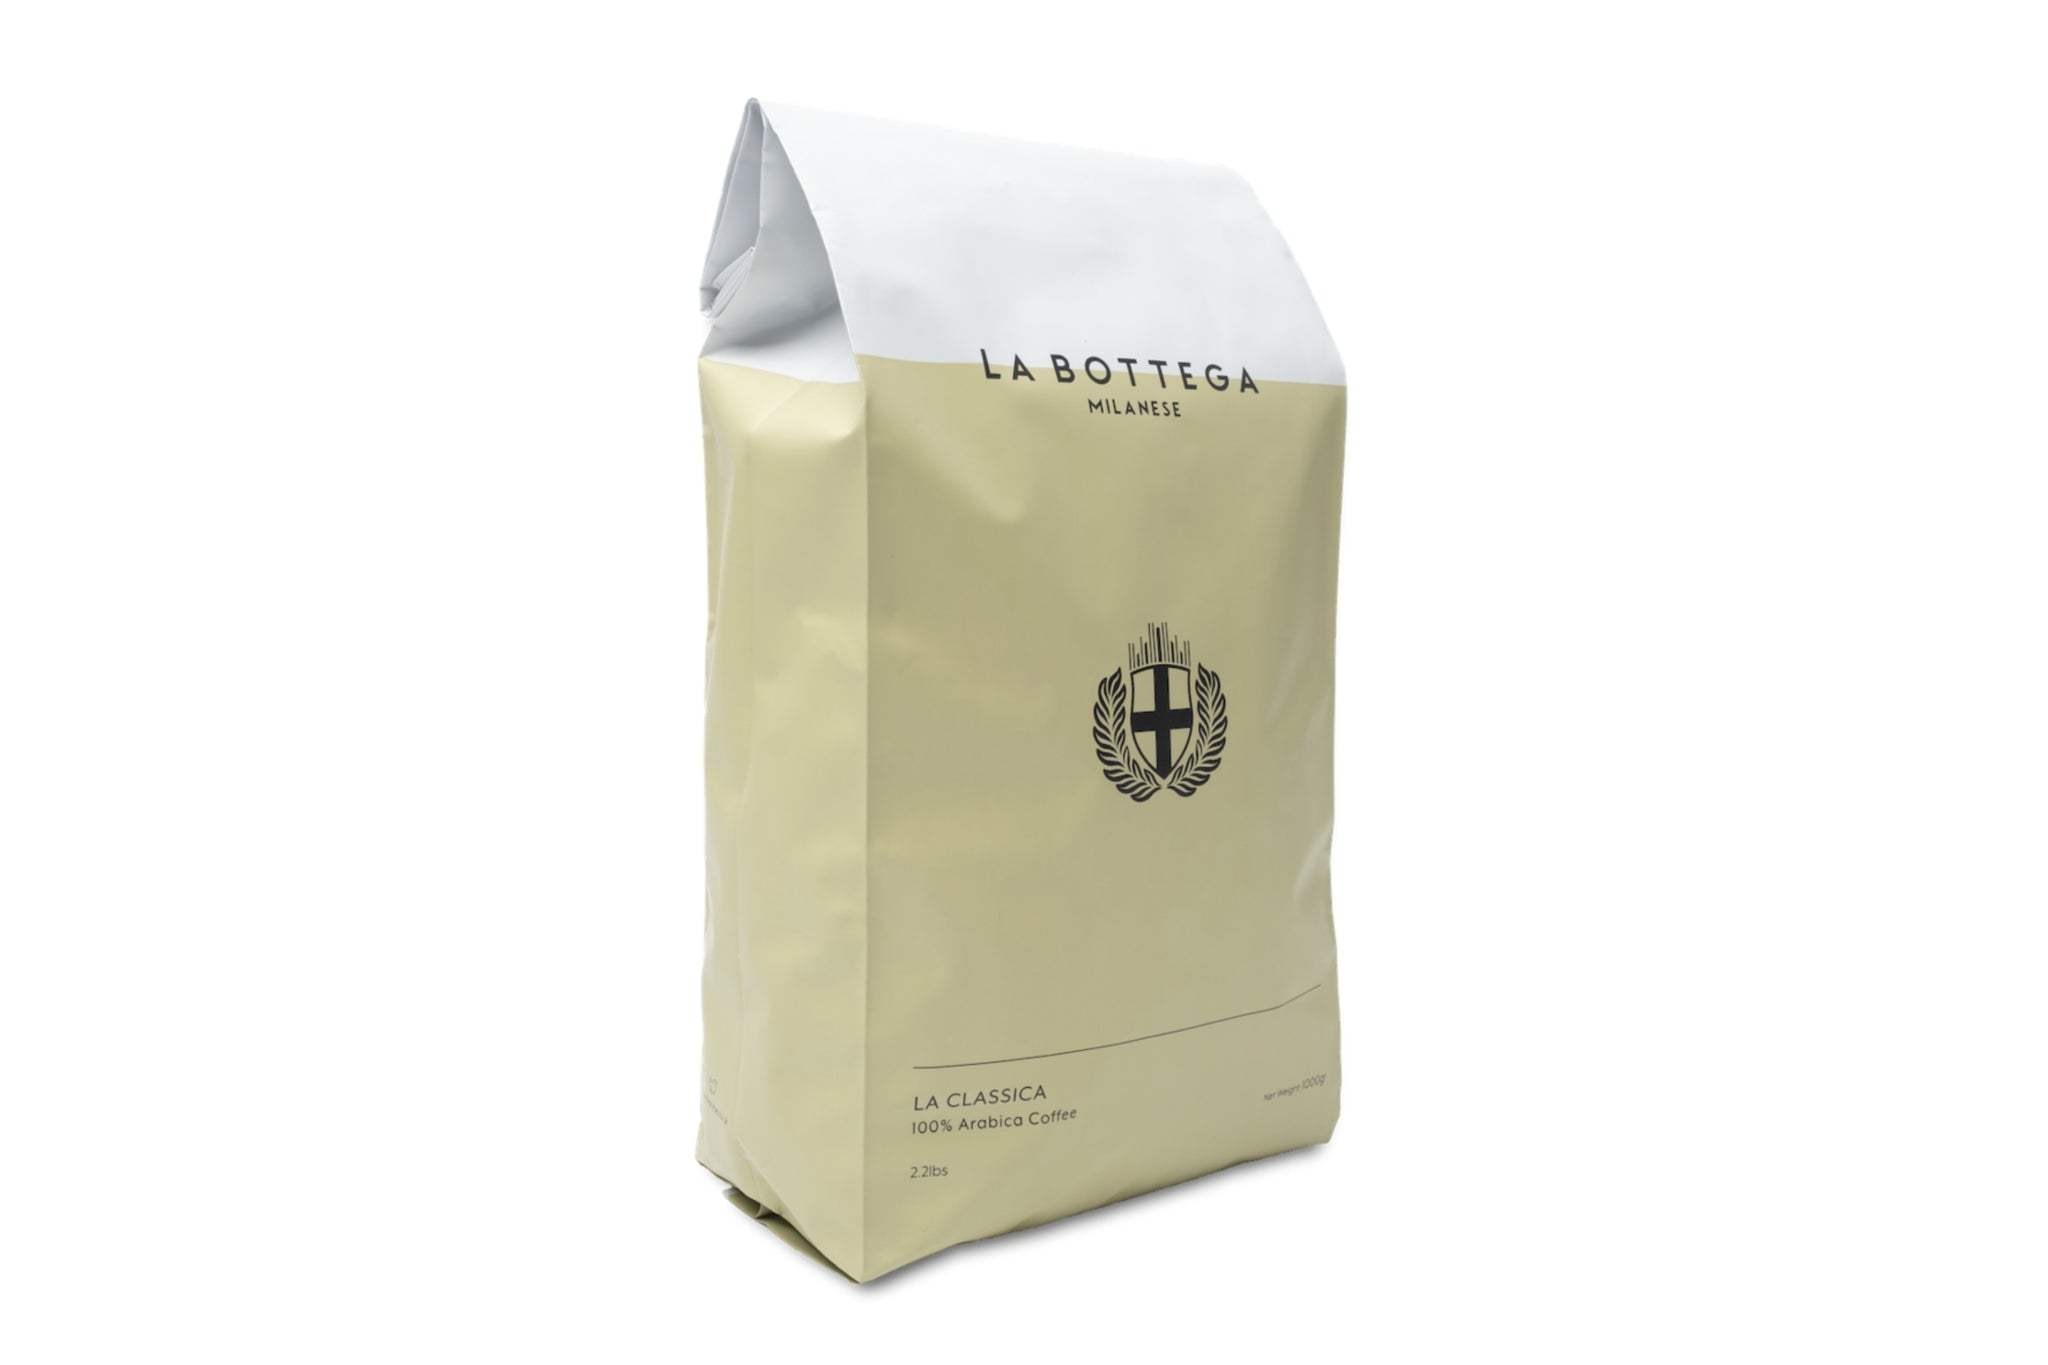 La Classica Fair Trade Coffee Beans 100% Arabica 1KG